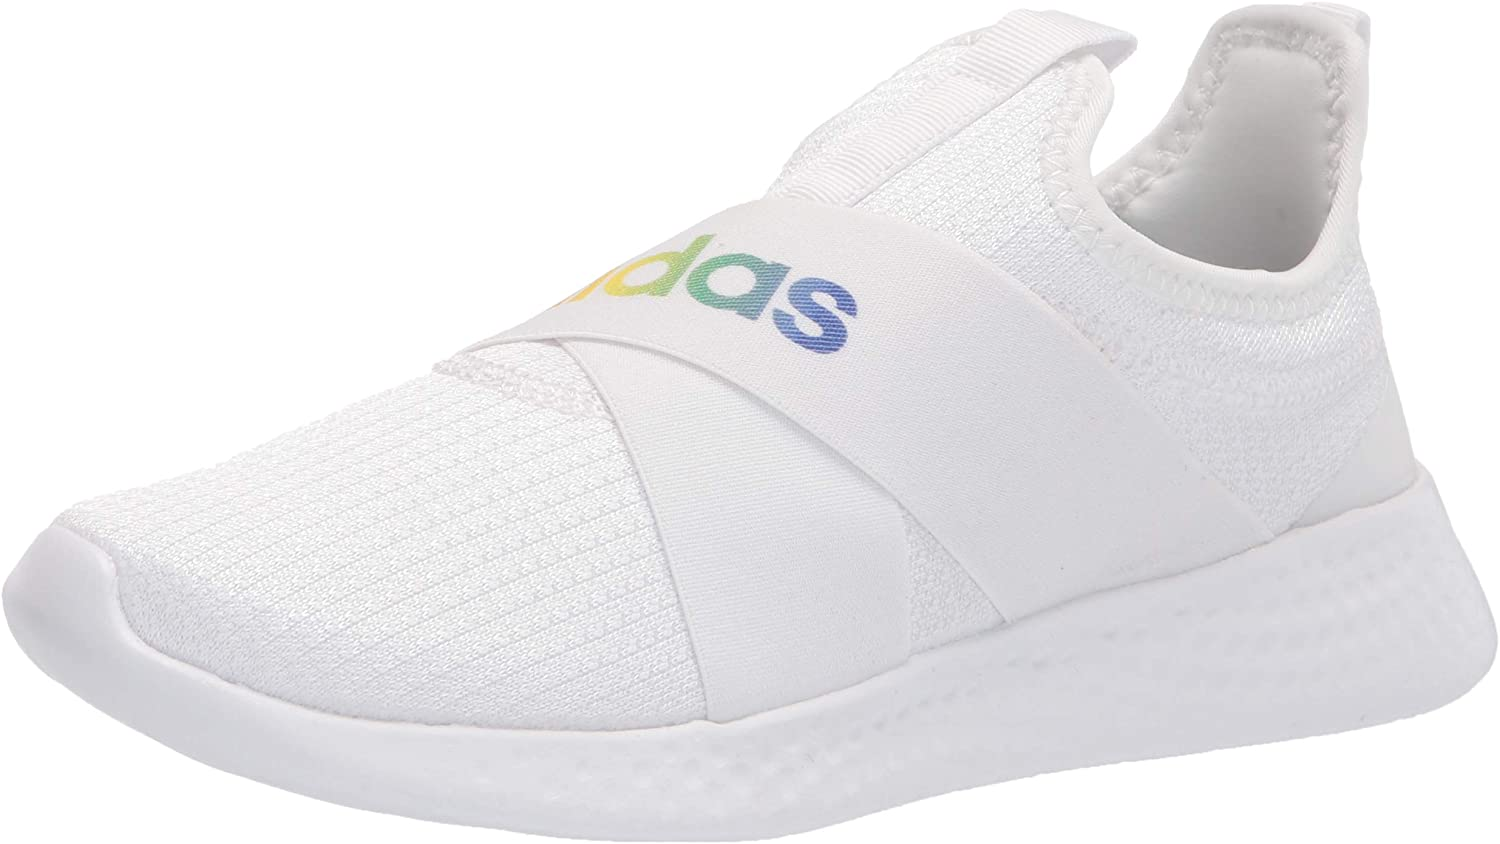 adidas Women's ! Super beauty product restock quality top! Puremotion Shoe Classic Running Adapt